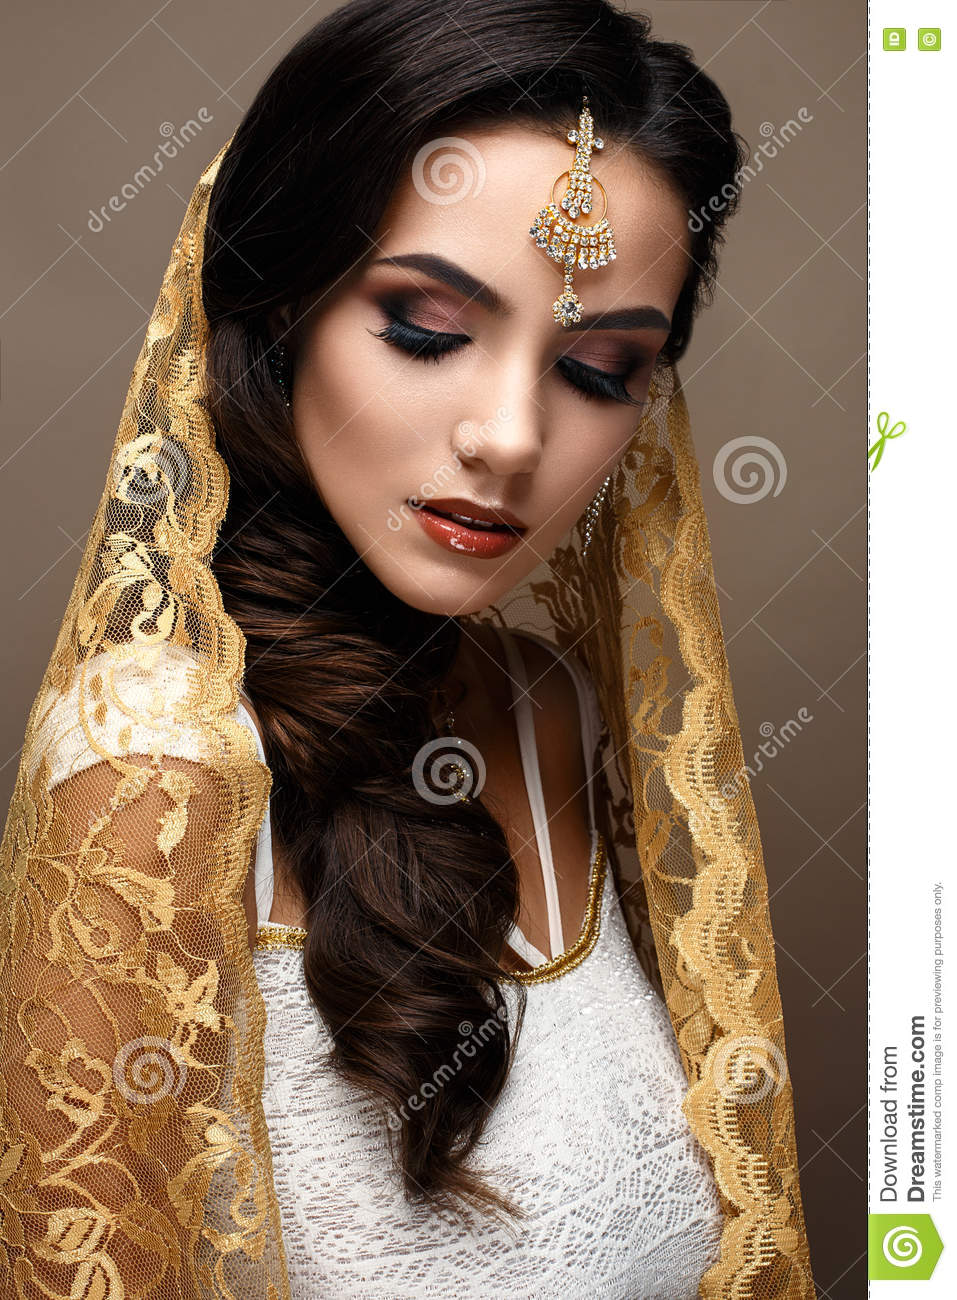 Beautiful girl in Indian style with a scarf on her head. Model with a creative and bright makeup. Beautiful face. The photo was taken in a studio.